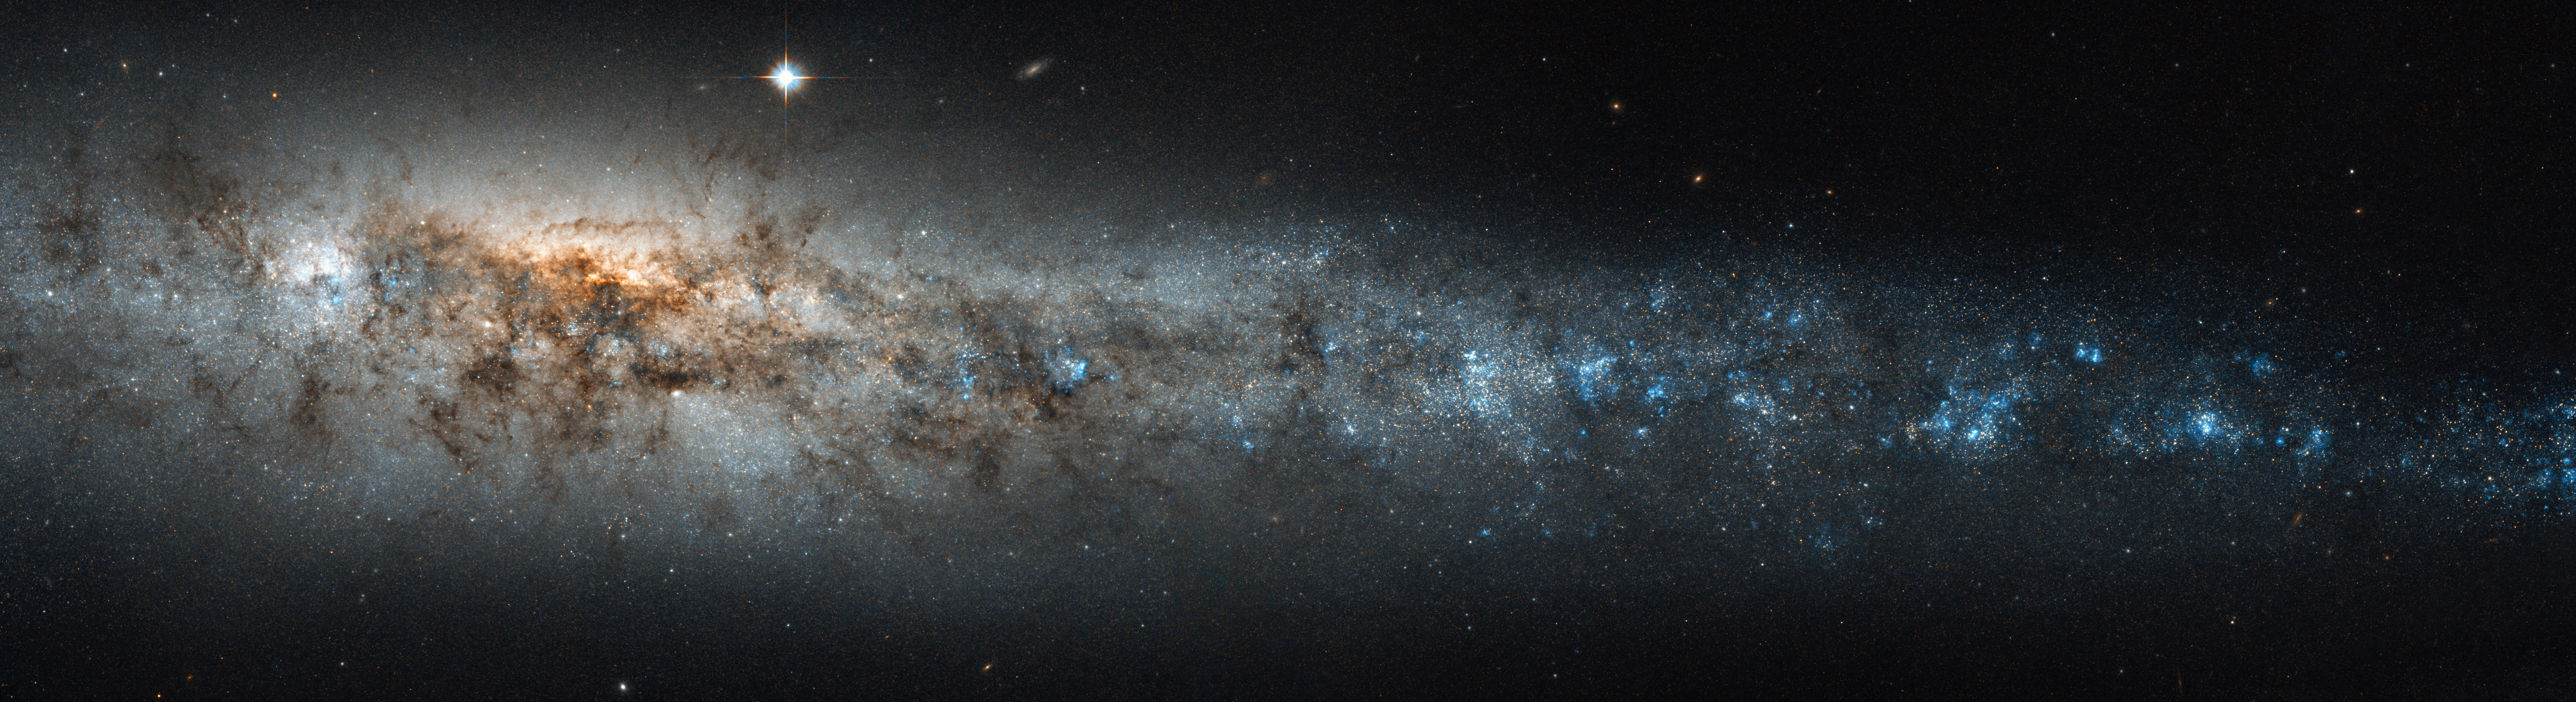 high resolution nasa space images-#3